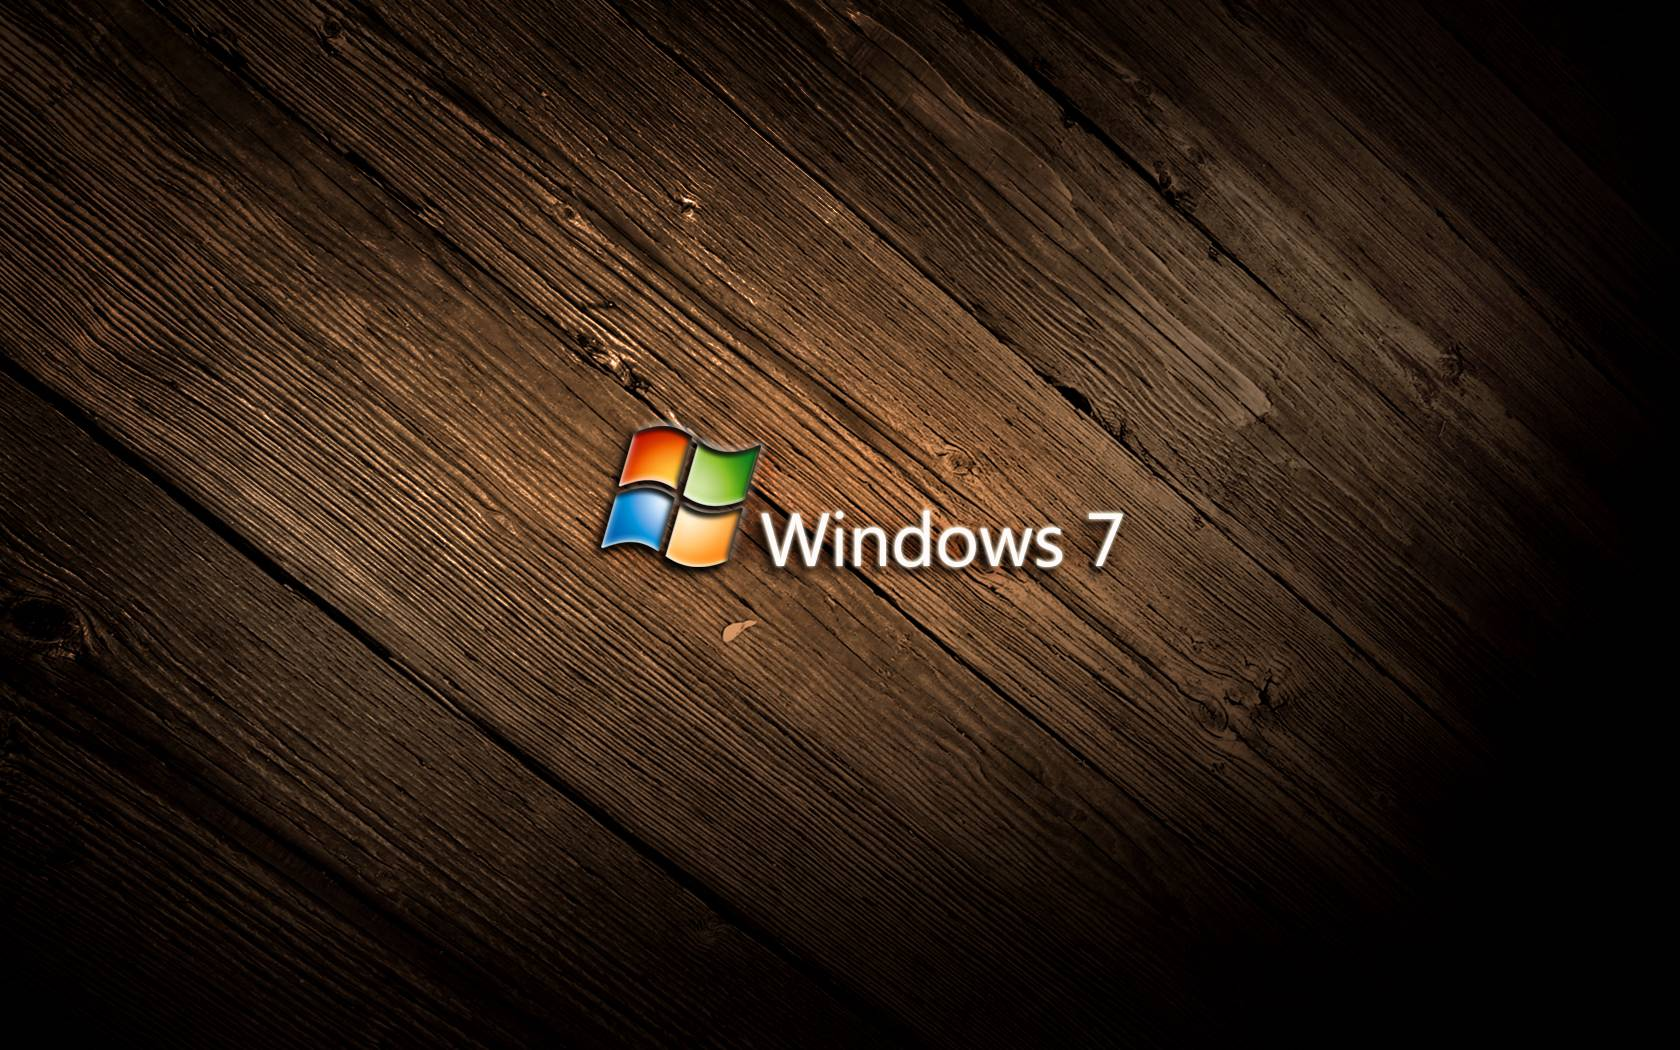 Windows 7 hd wallpapers wallpaper cave for Best home wallpaper